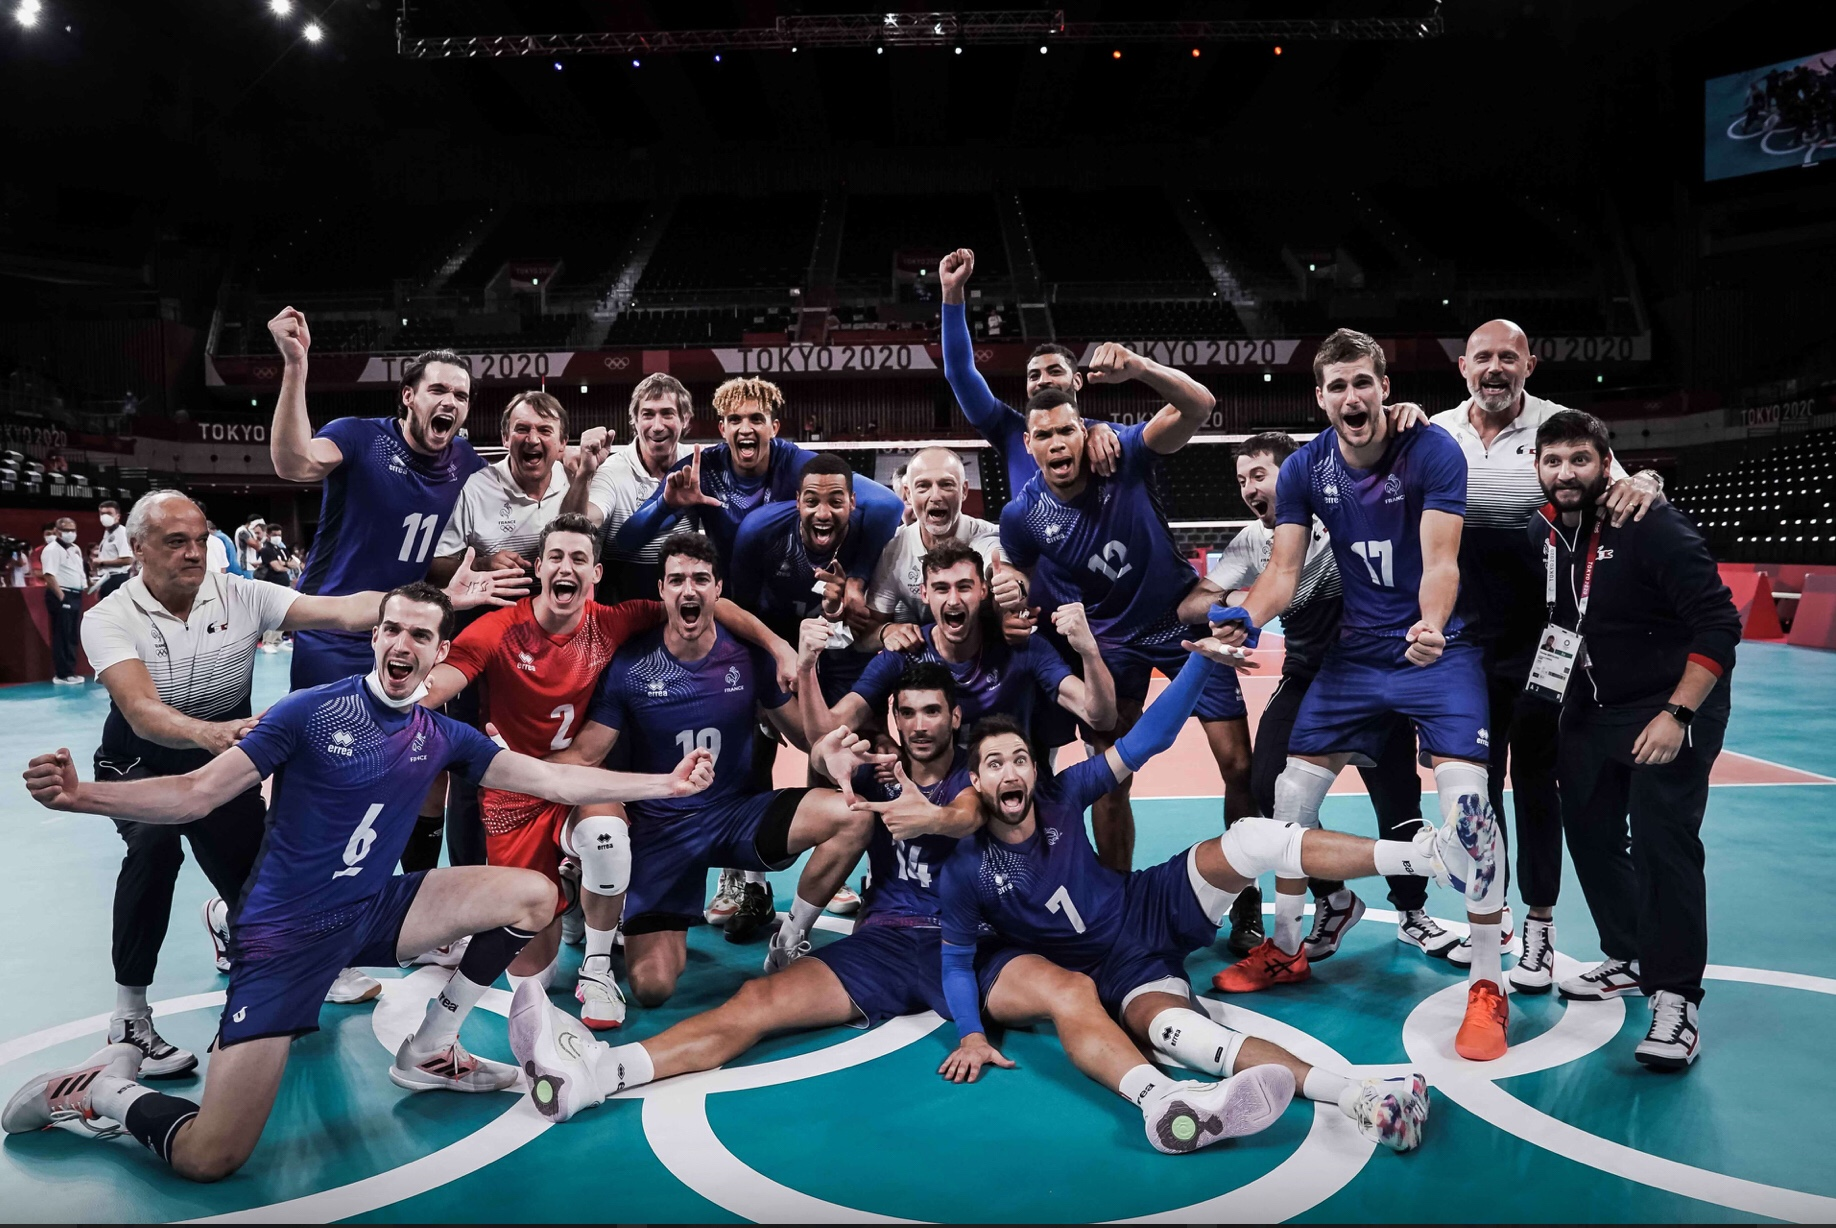 Tokyo 2020: France joins ROC in final after a great 3-0 win over Argentina